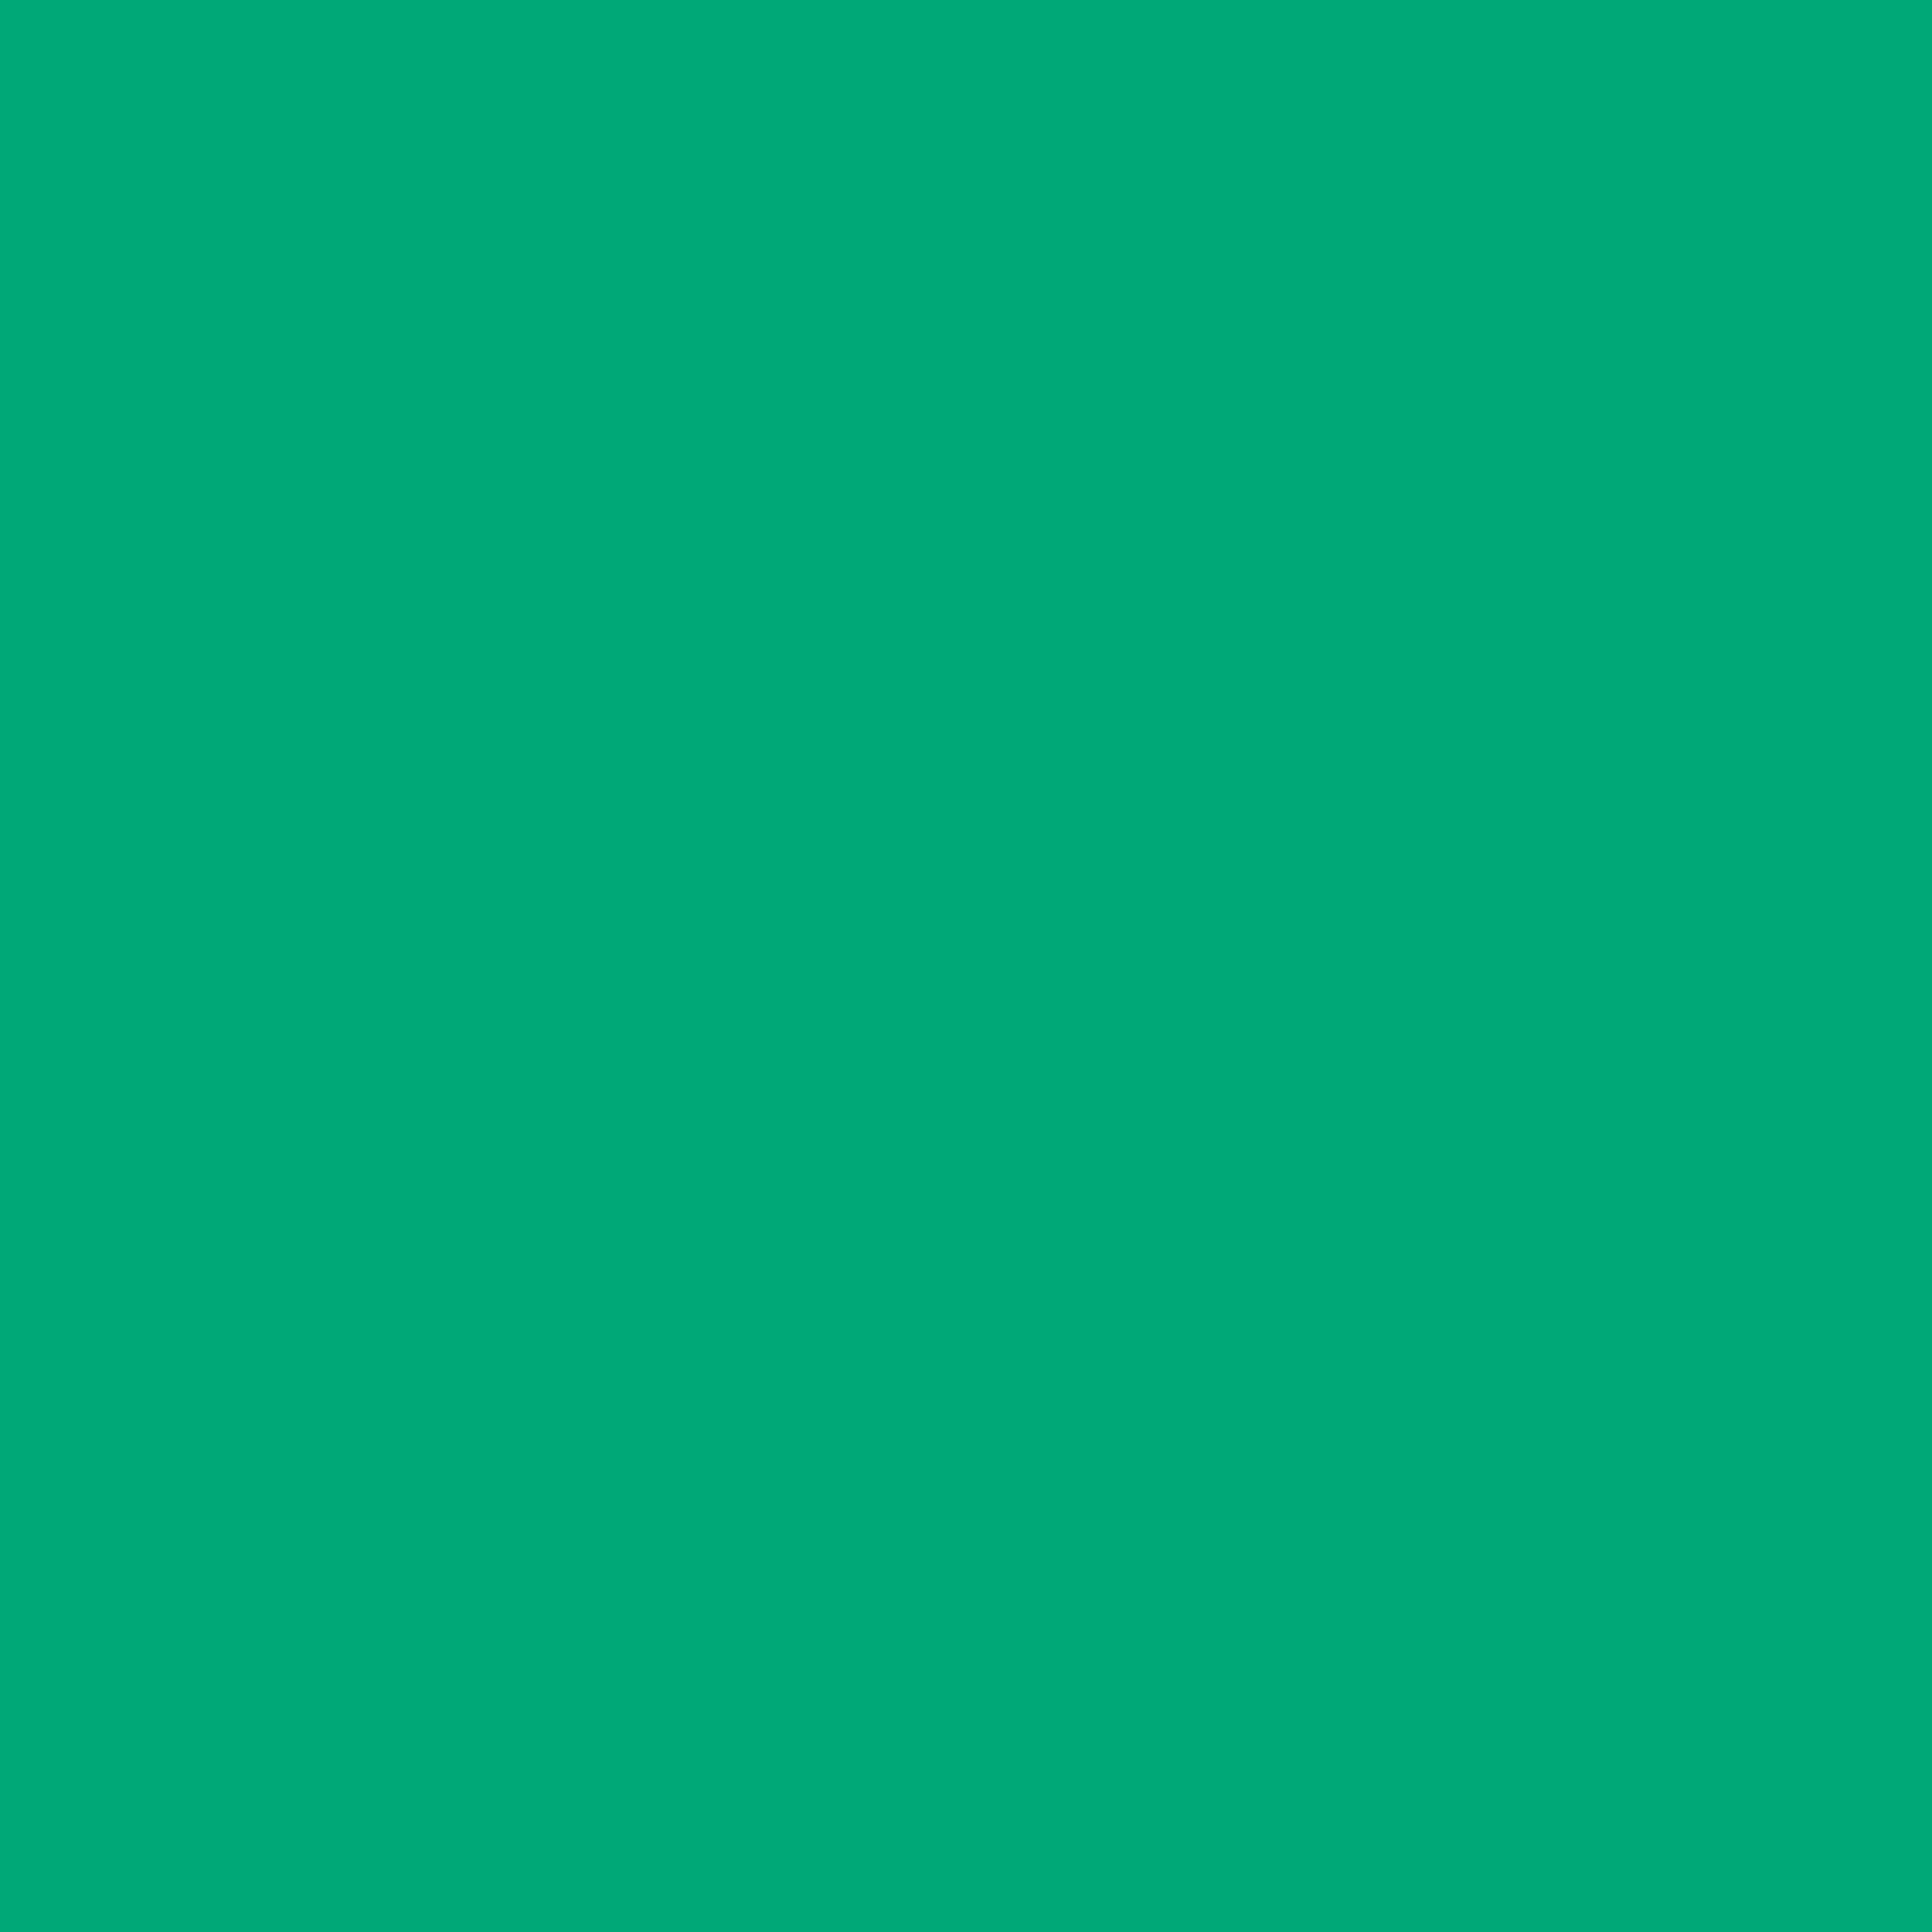 2732x2732 Green Munsell Solid Color Background